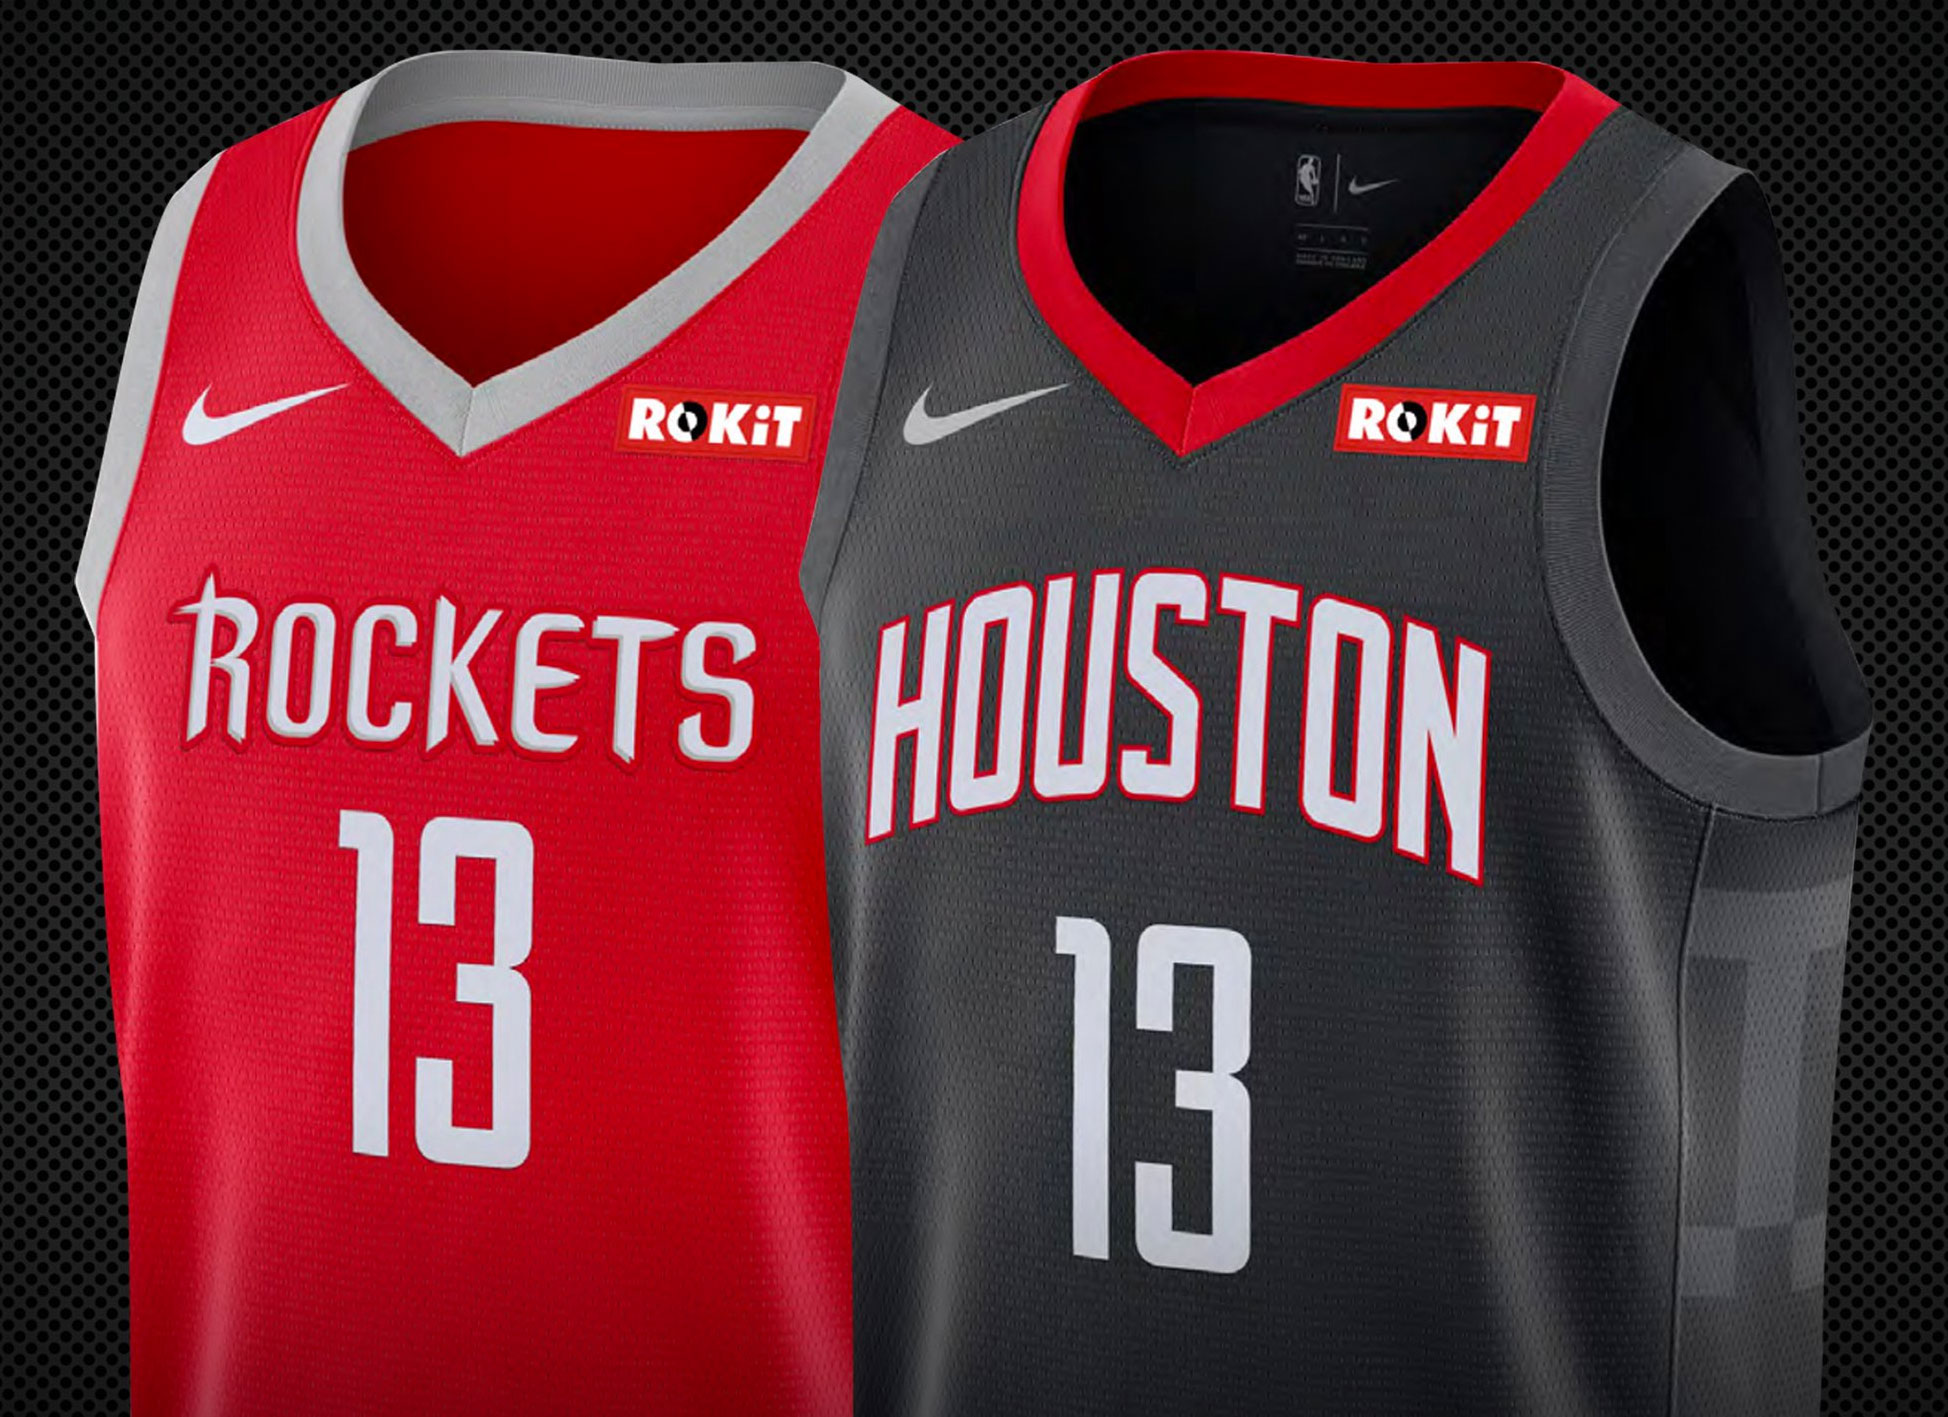 """Houston s """"ROKiT"""" patch will always feature the red rectangle around the  ROKiT logo regardless of the base colour of the jersey (see the example on  black ... 343d52170"""